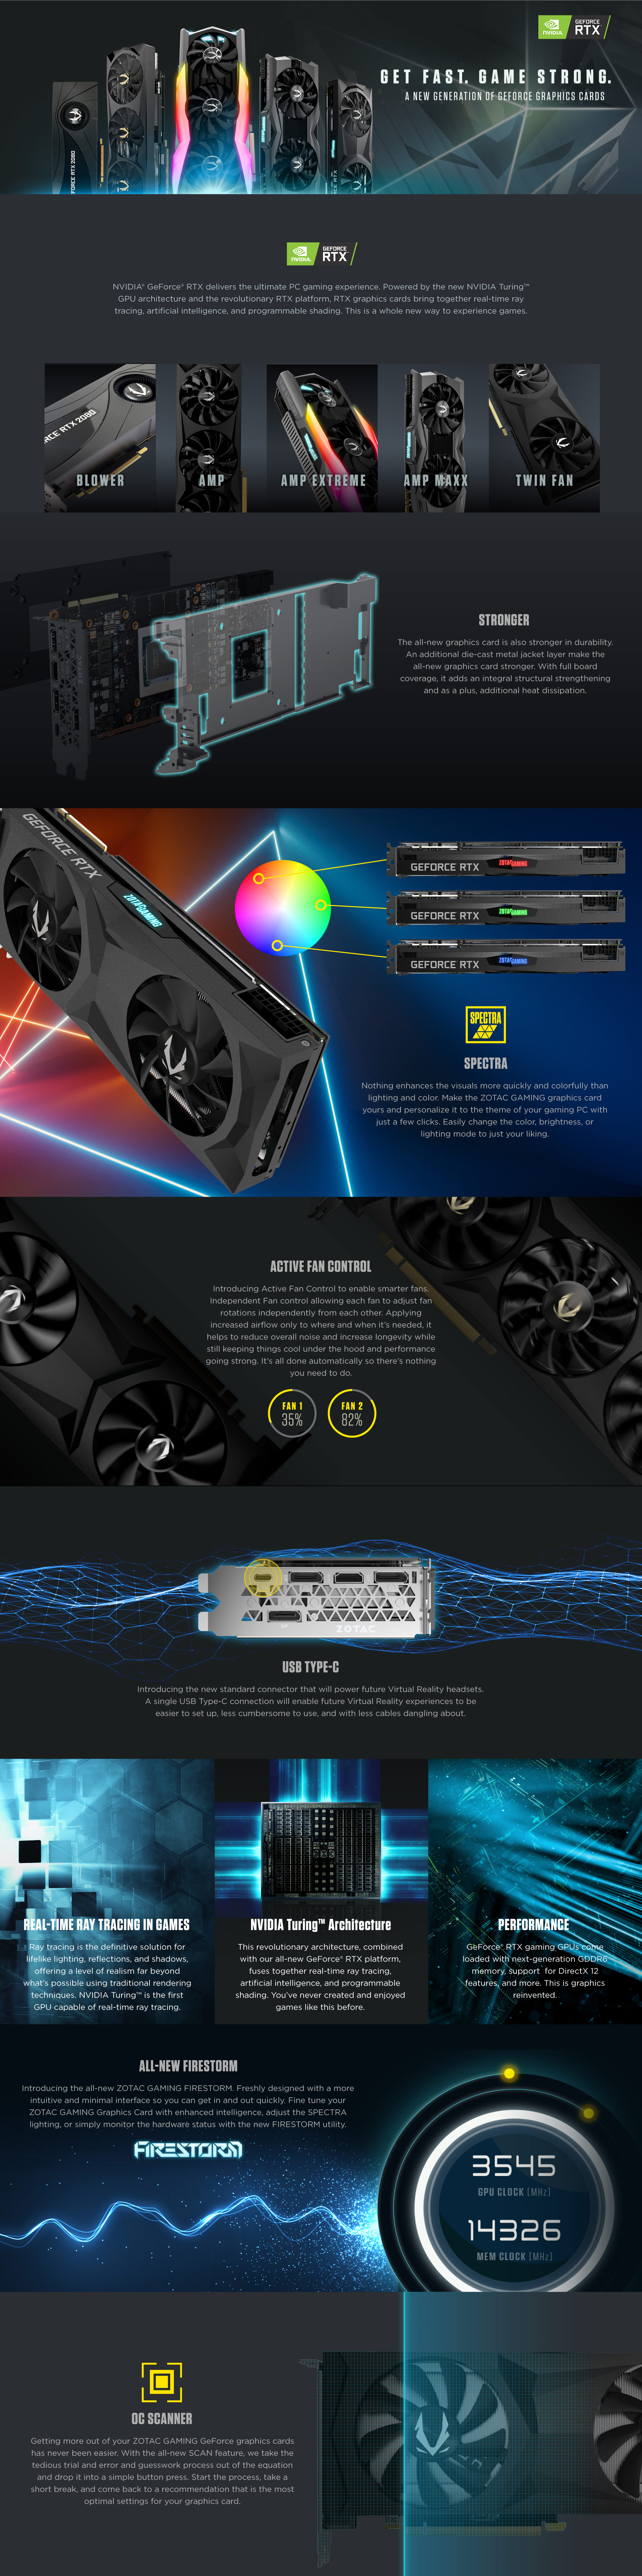 ZOTAC GAMING GeForce RTX 2080 Ti Twin Fan 11GB Graphics Card Overview